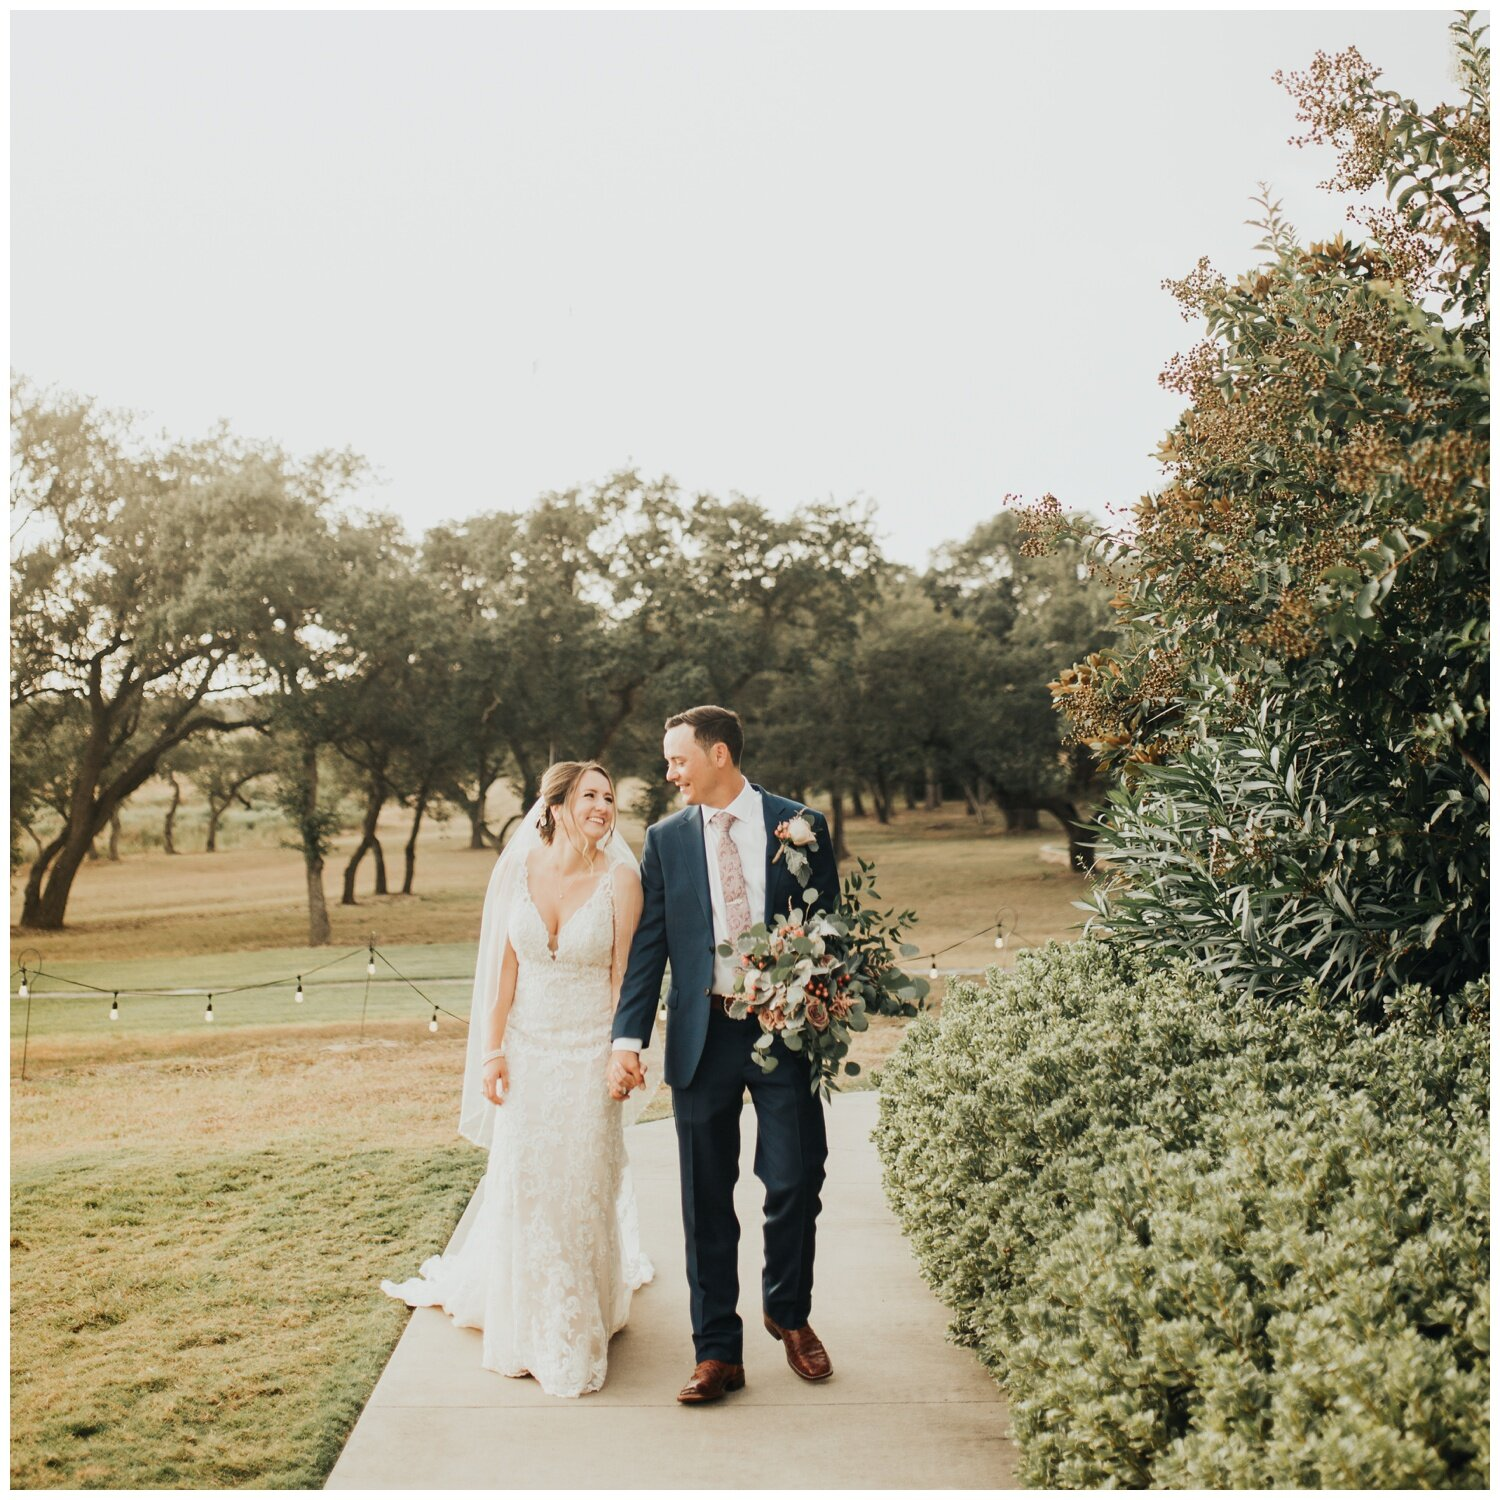 Modern Wedding at Ma Maison in Dripping Springs, Austin, Texas (Joshua and Parisa – Austin Wedding Photographer)_0052.jpg